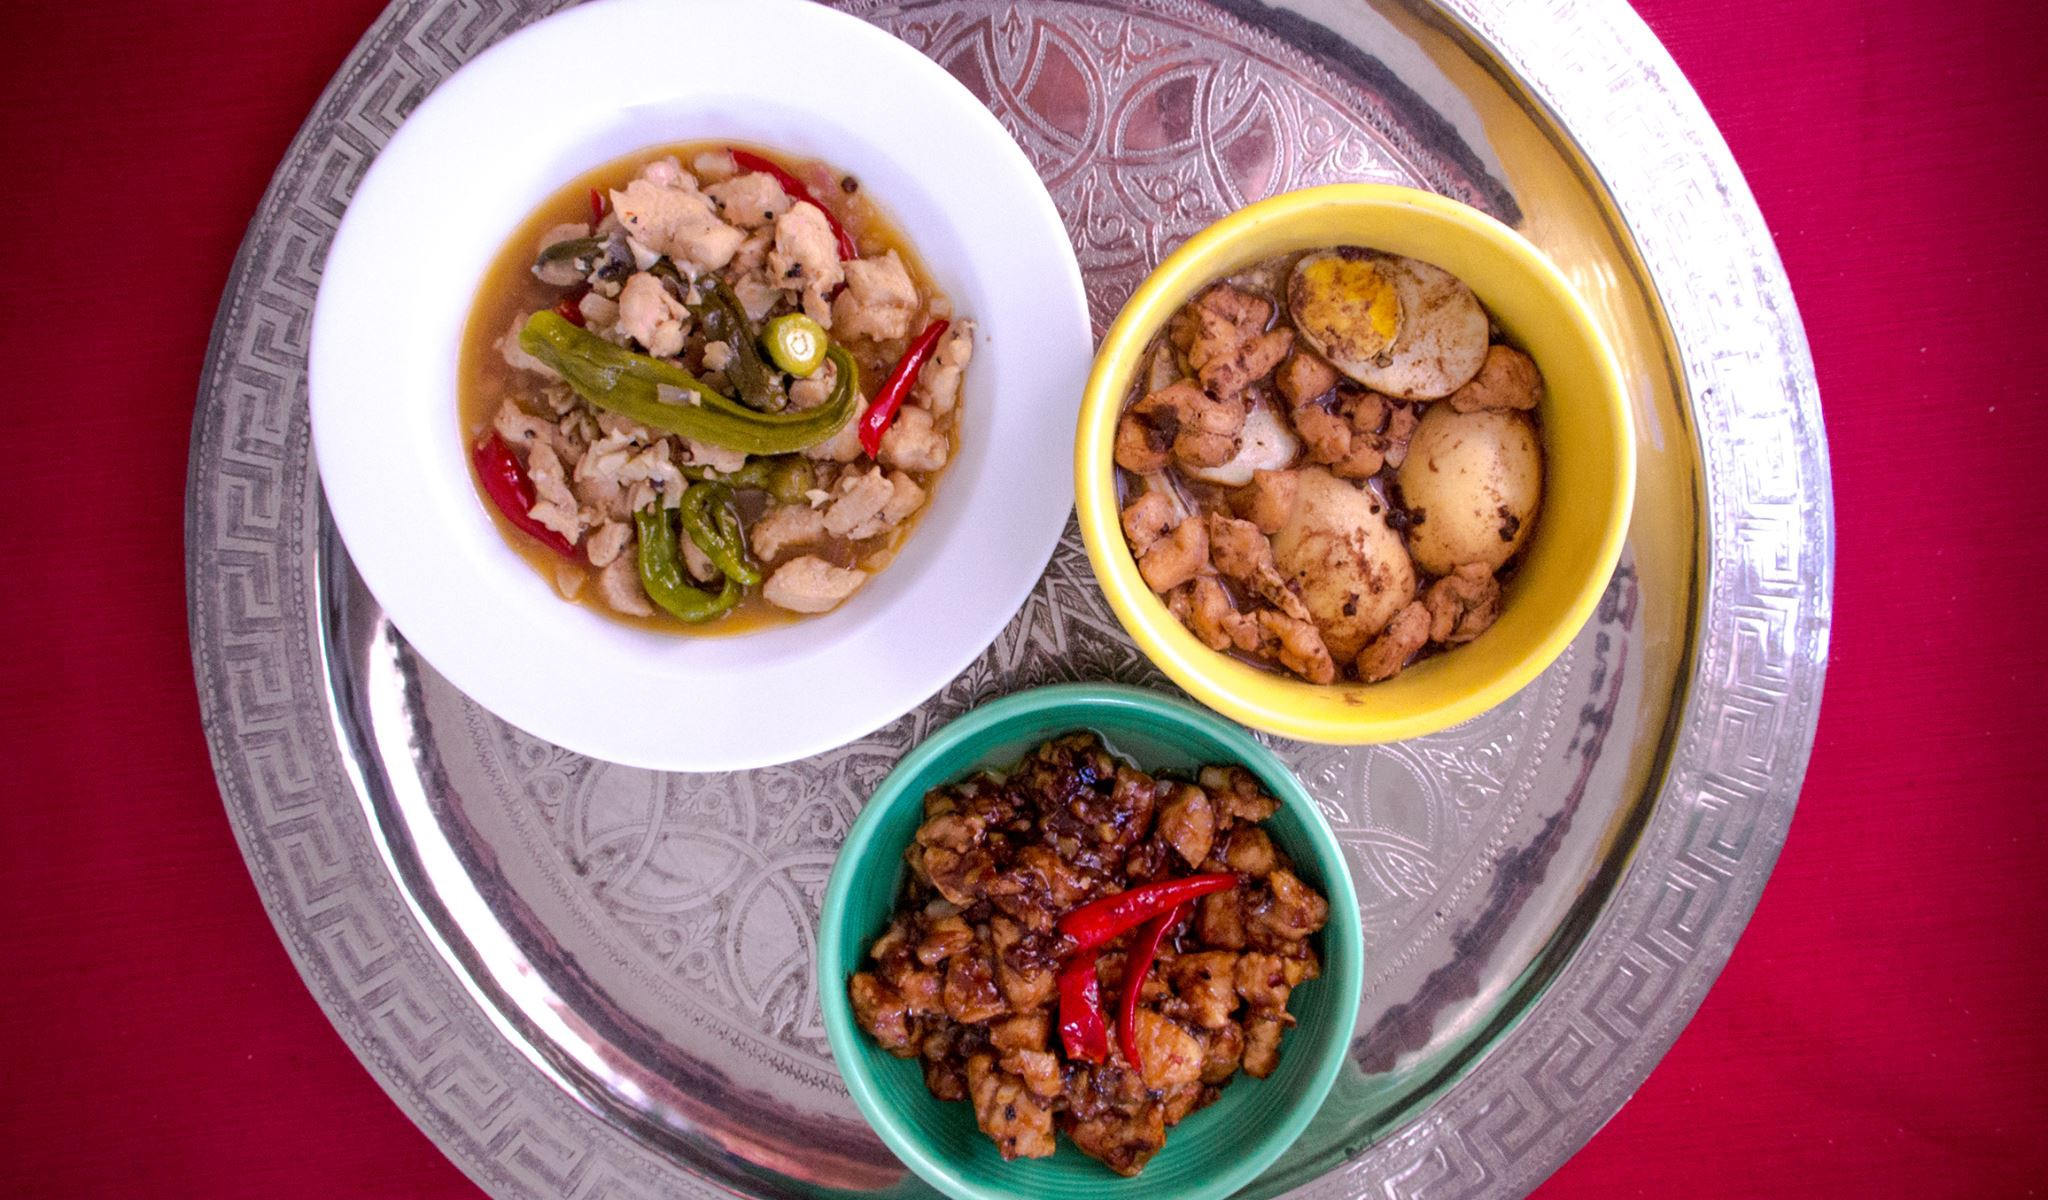 Chicken Breast And Green Chili In Vinegar And Fish Sauce In English And Filipino By Wilfredo Pascual Medium